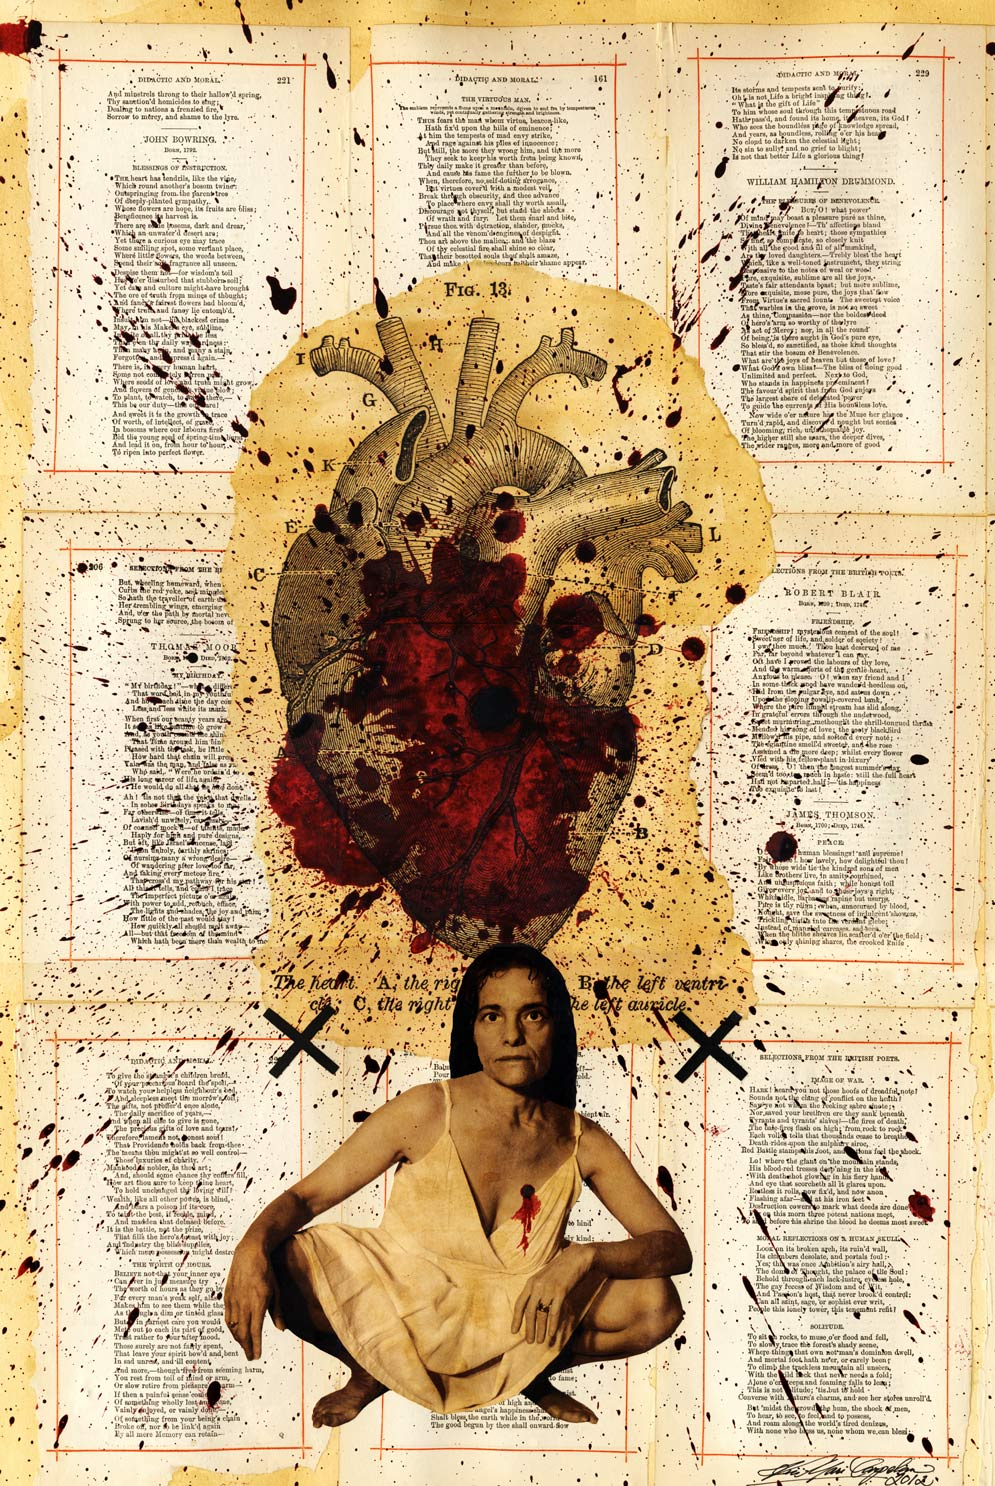 Your Indifference is Breaking My Heart. Mixed media collage with artist's photograph and pages from a 19th C book of moral poetry. Copyright 2012.